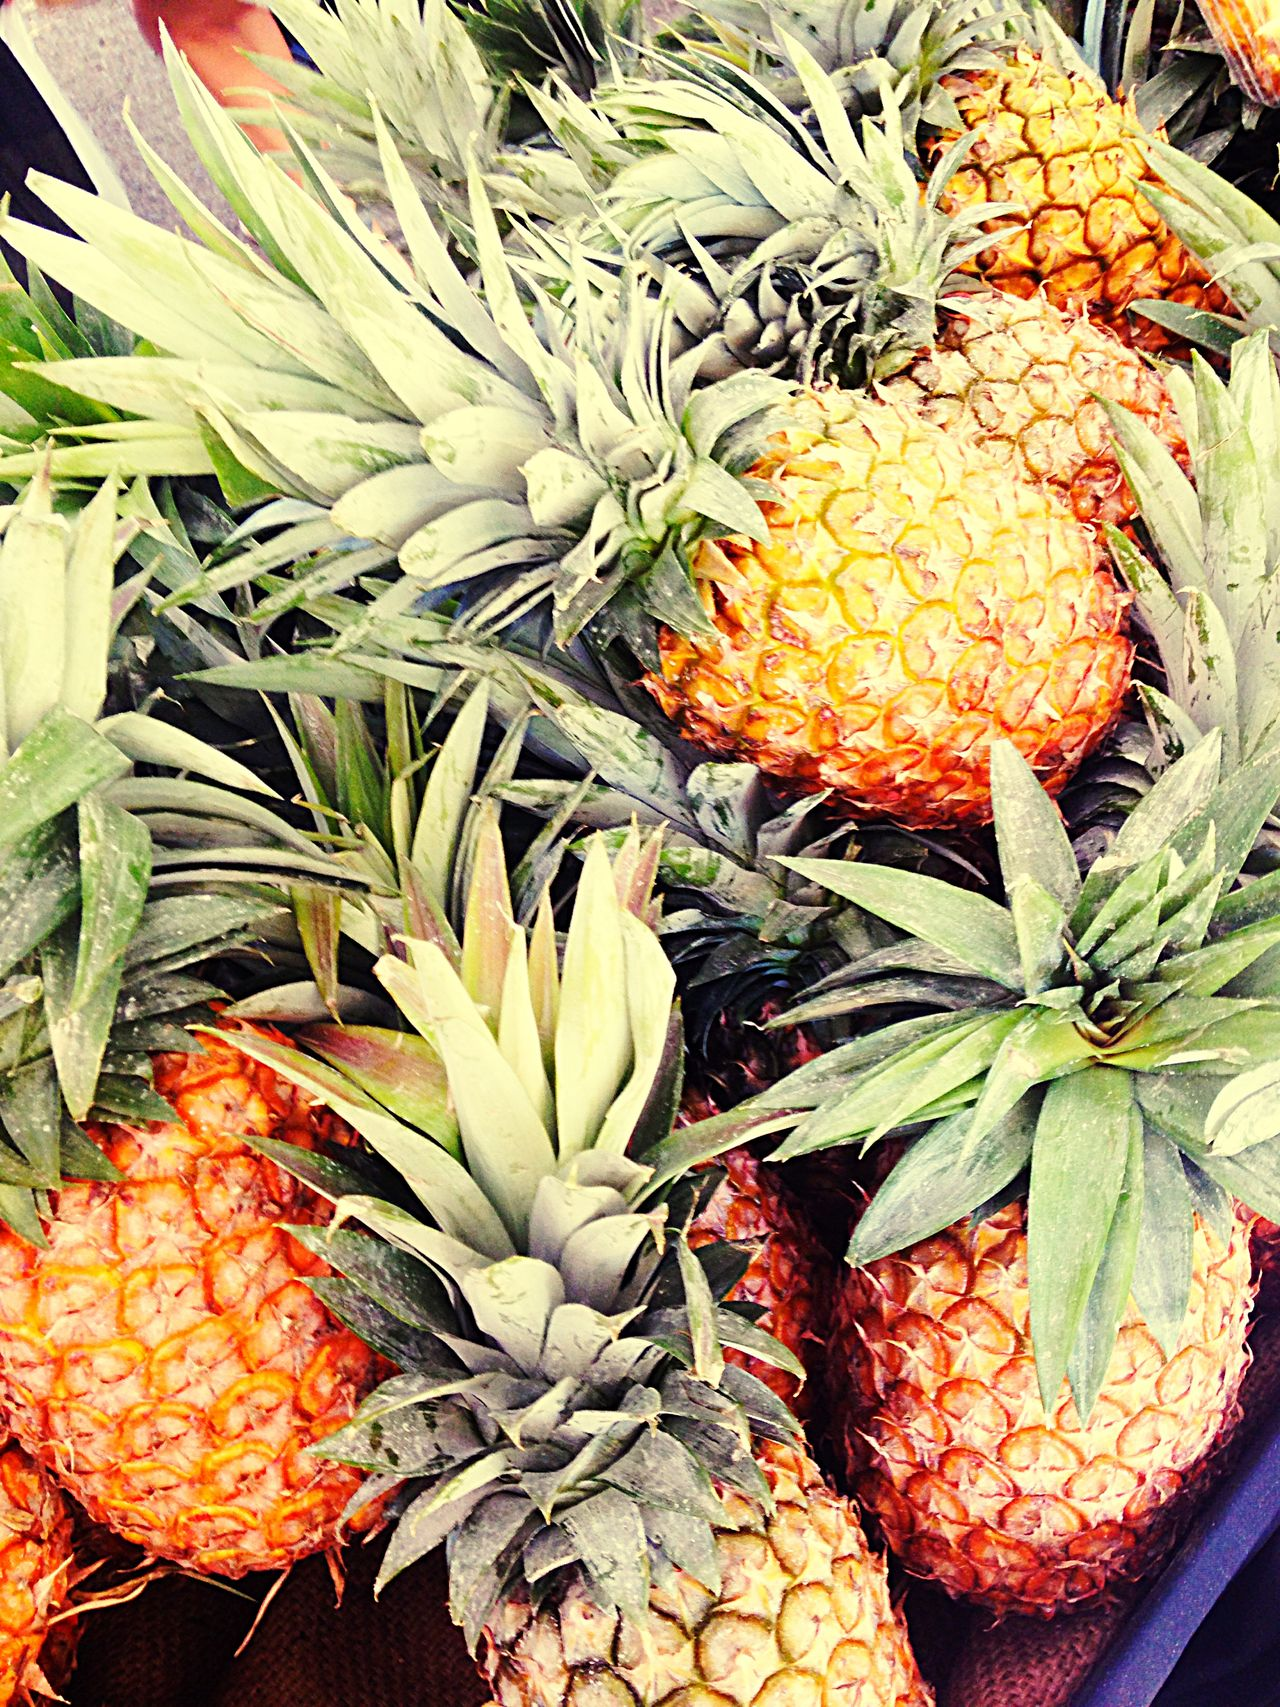 Fruits Galore pineapples love Fresh Produce Enjoying Life Enjoying The Sun The Foodie - 2015 EyeEm Awards